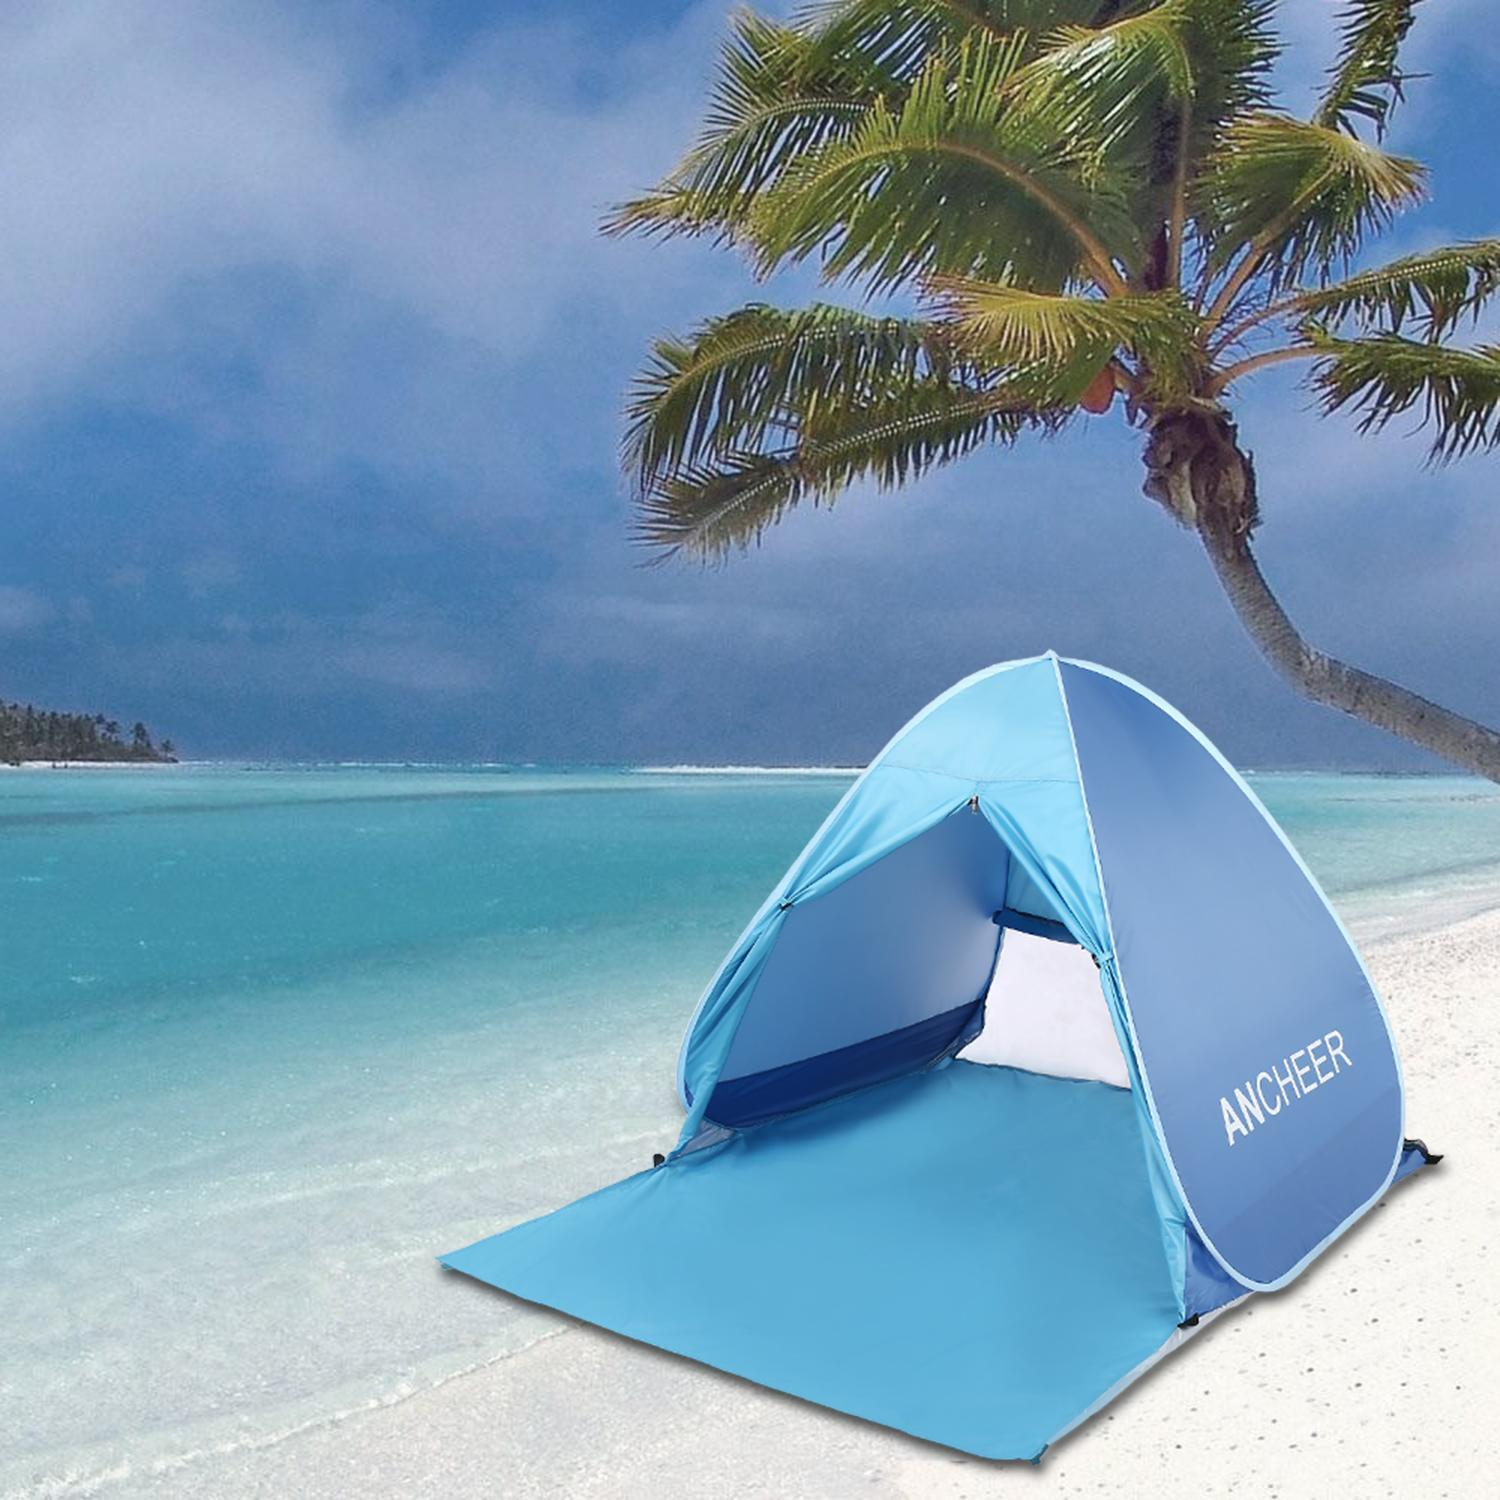 Big Clearance! Portable Beach Shade Tent Sun Shelter, Instant Pop up Family Anti UV Cabana Margot by